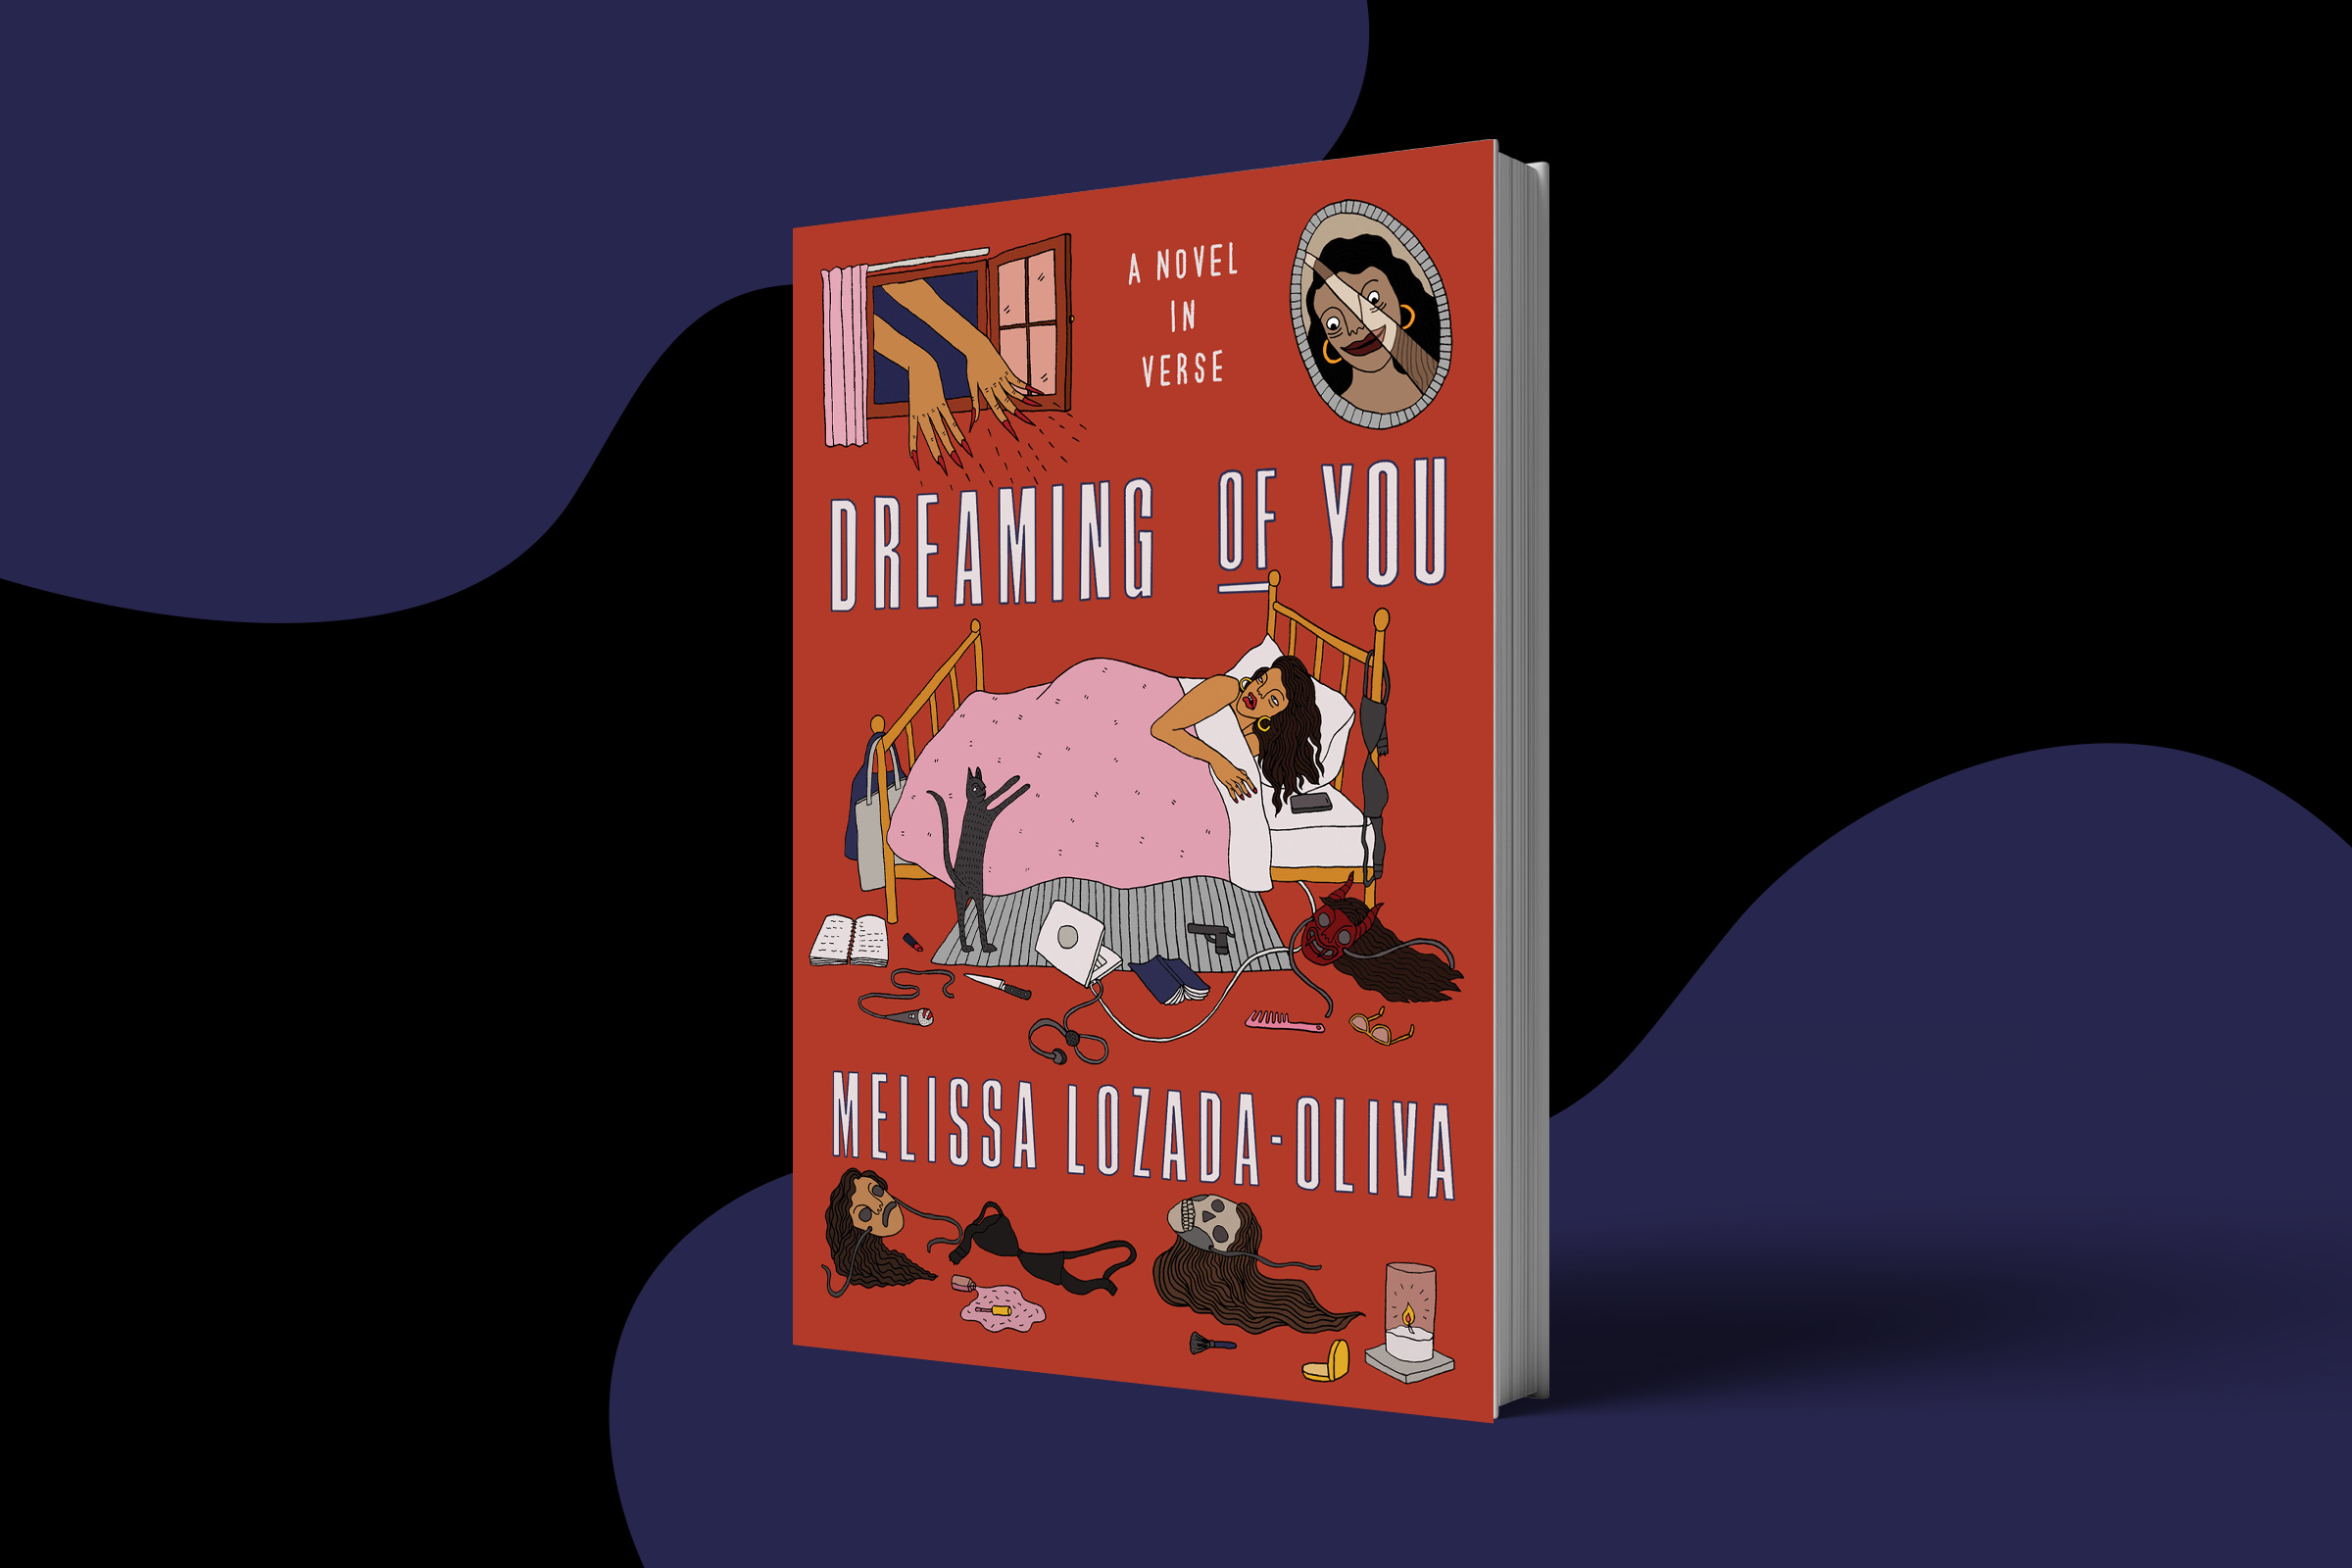 The book cover pictured shows a Latina with brown hair in her bed, surrounded by masks. She's looking up at a framed photo of another woman and the window, where there are dismembered hands reaching out to her.